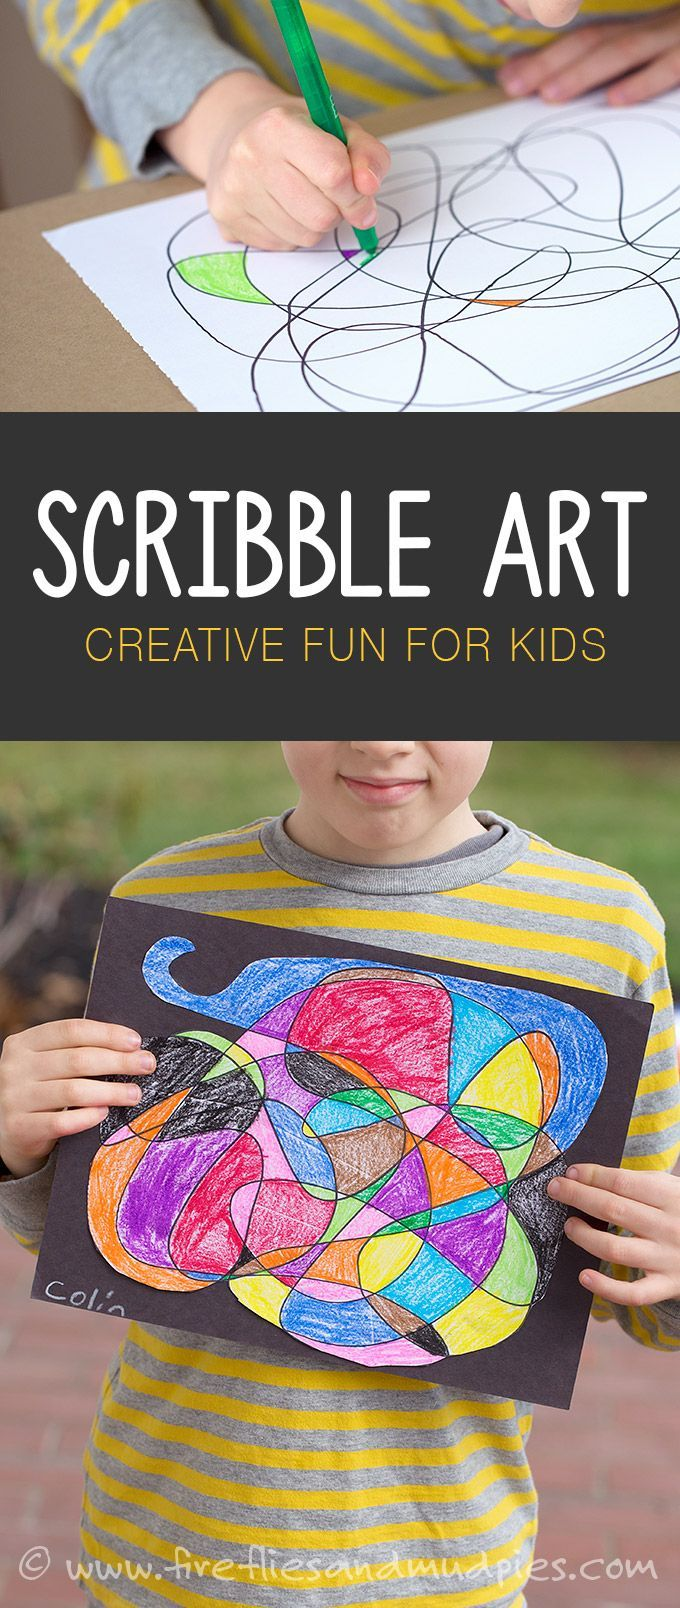 Scribble Drawing Ideas : Best scribble ideas on pinterest school age crafts